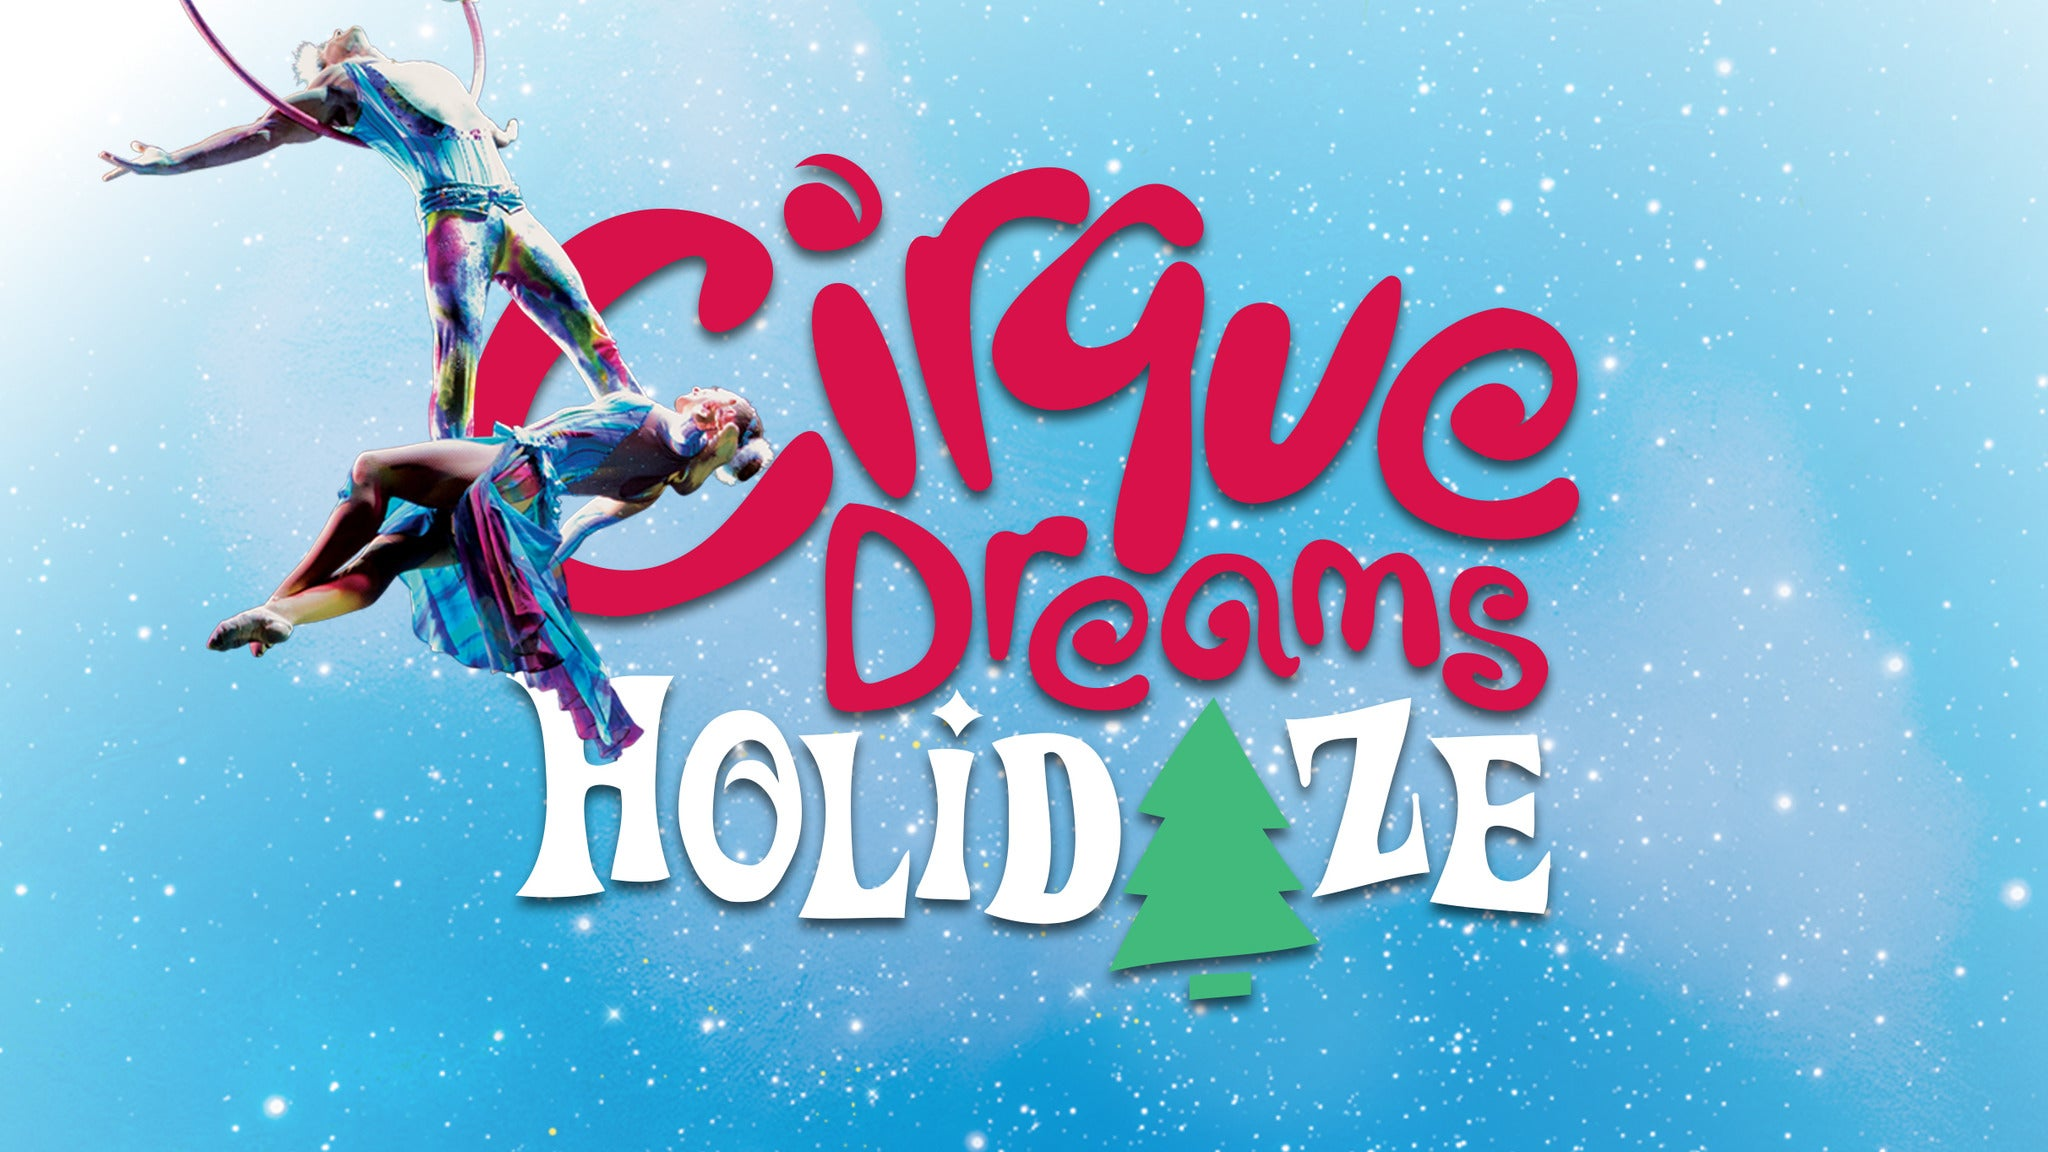 Cirque Dreams Holidaze at Gaylord Rockies - Bubly Theater